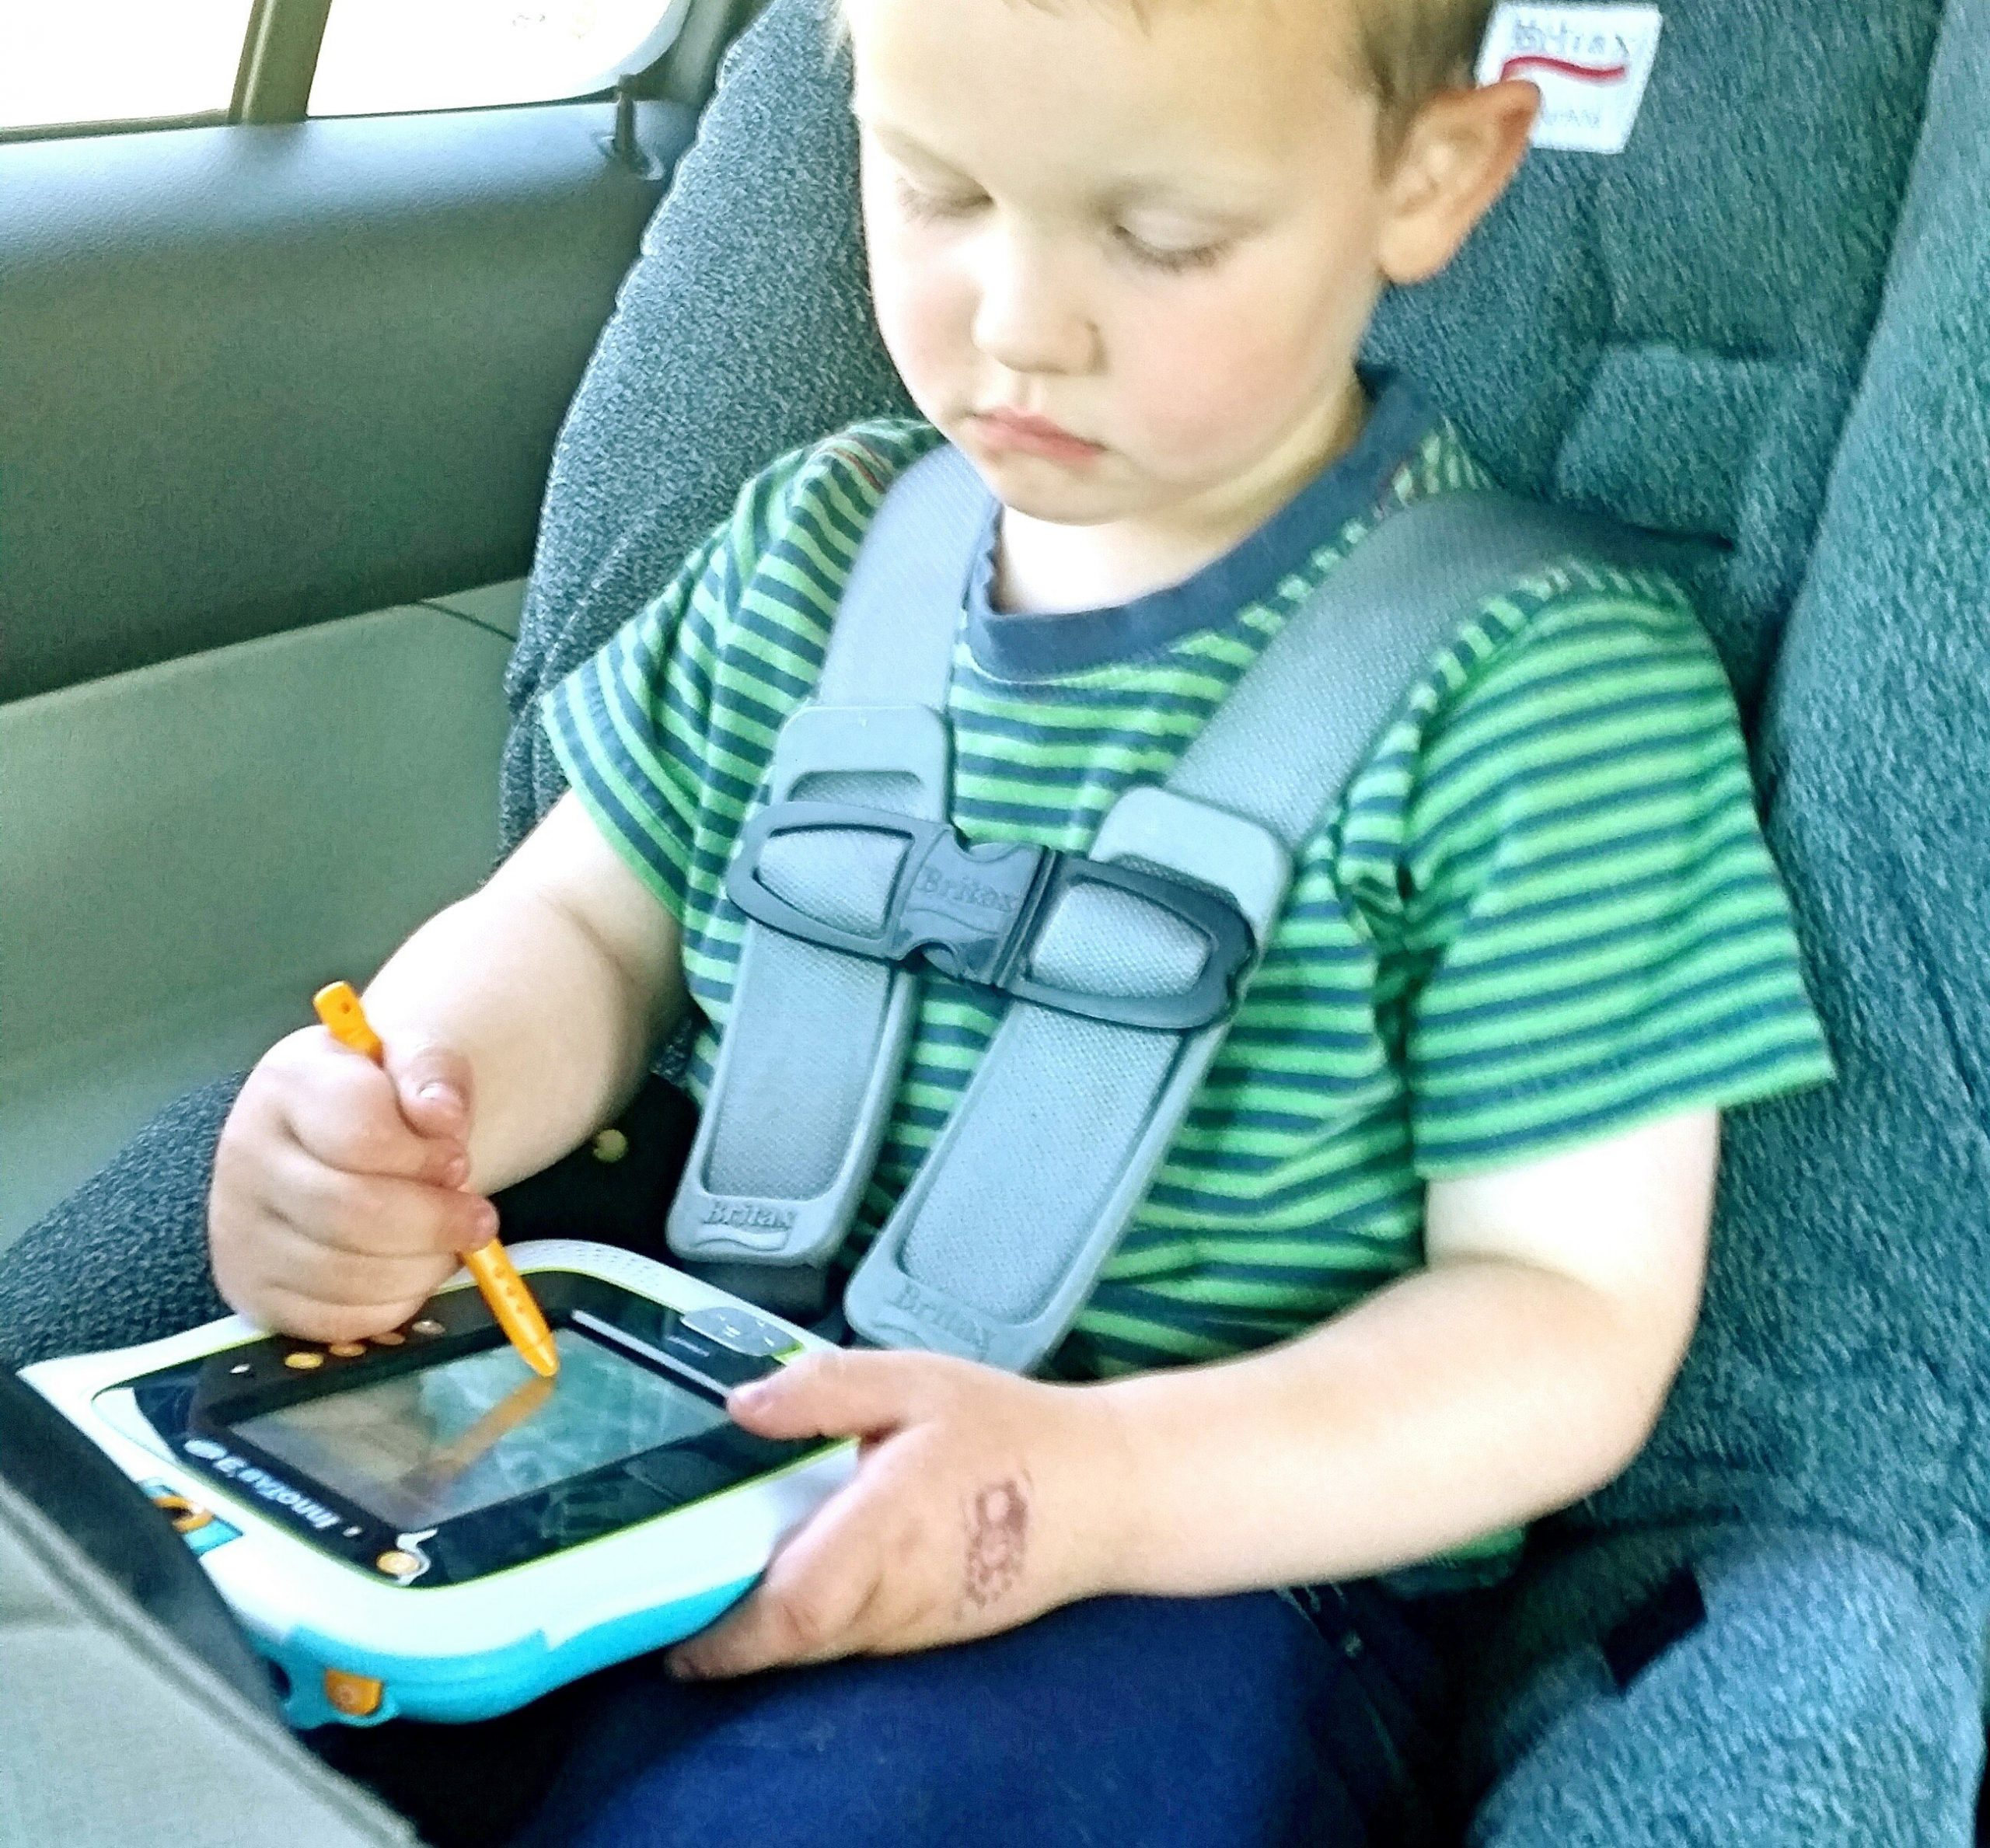 Top Two Tech Travel Toys for Kids